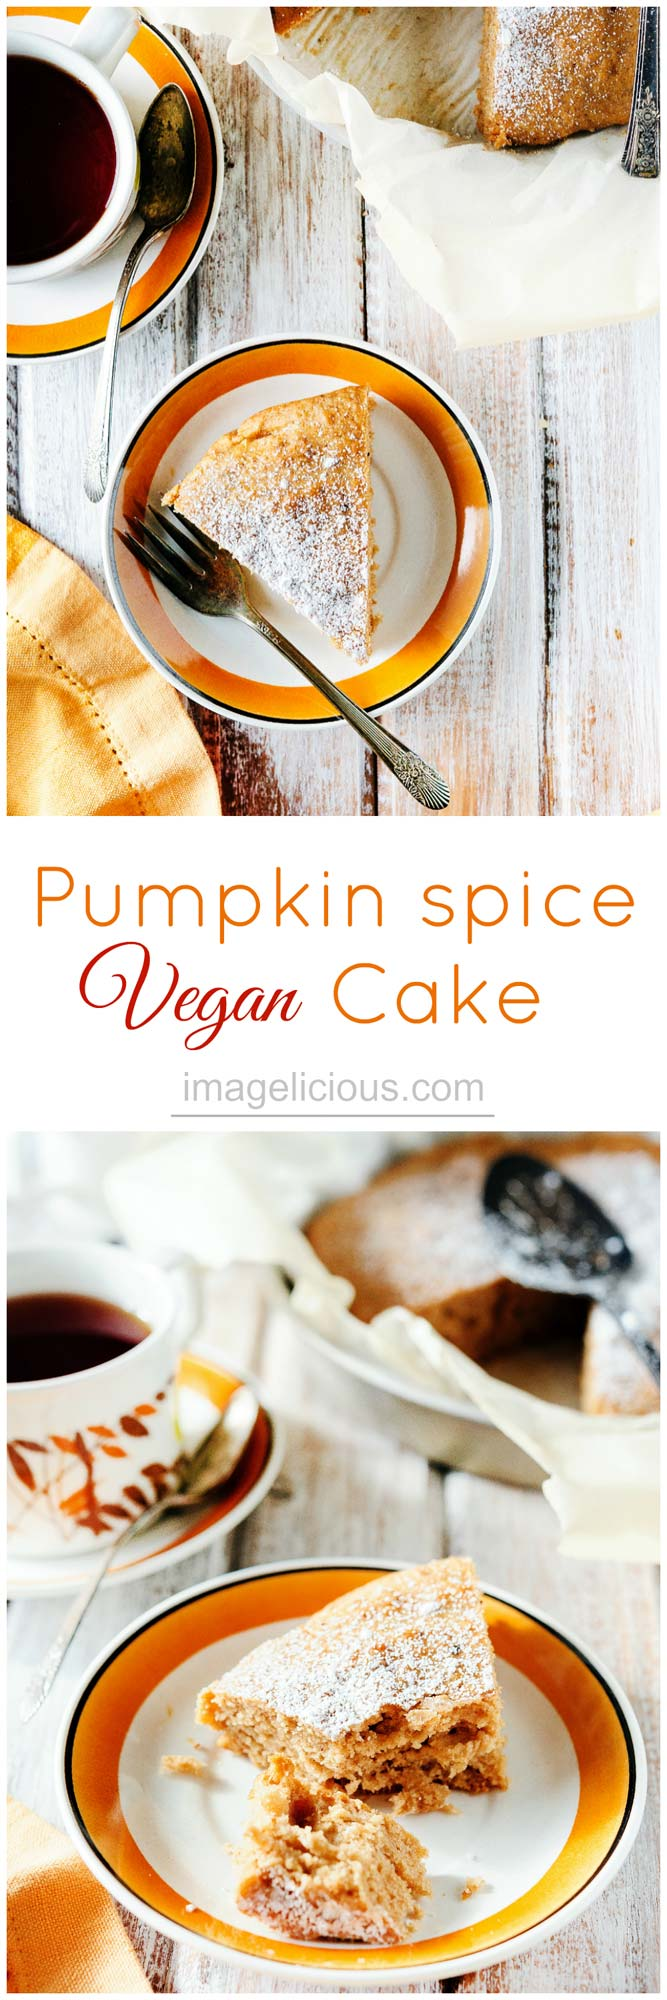 Pumpkin Spice Vegan Cake is soft and pillowy, delicate and wonderfully spiced, no-one would ever guess that it is vegan | Imagelicious